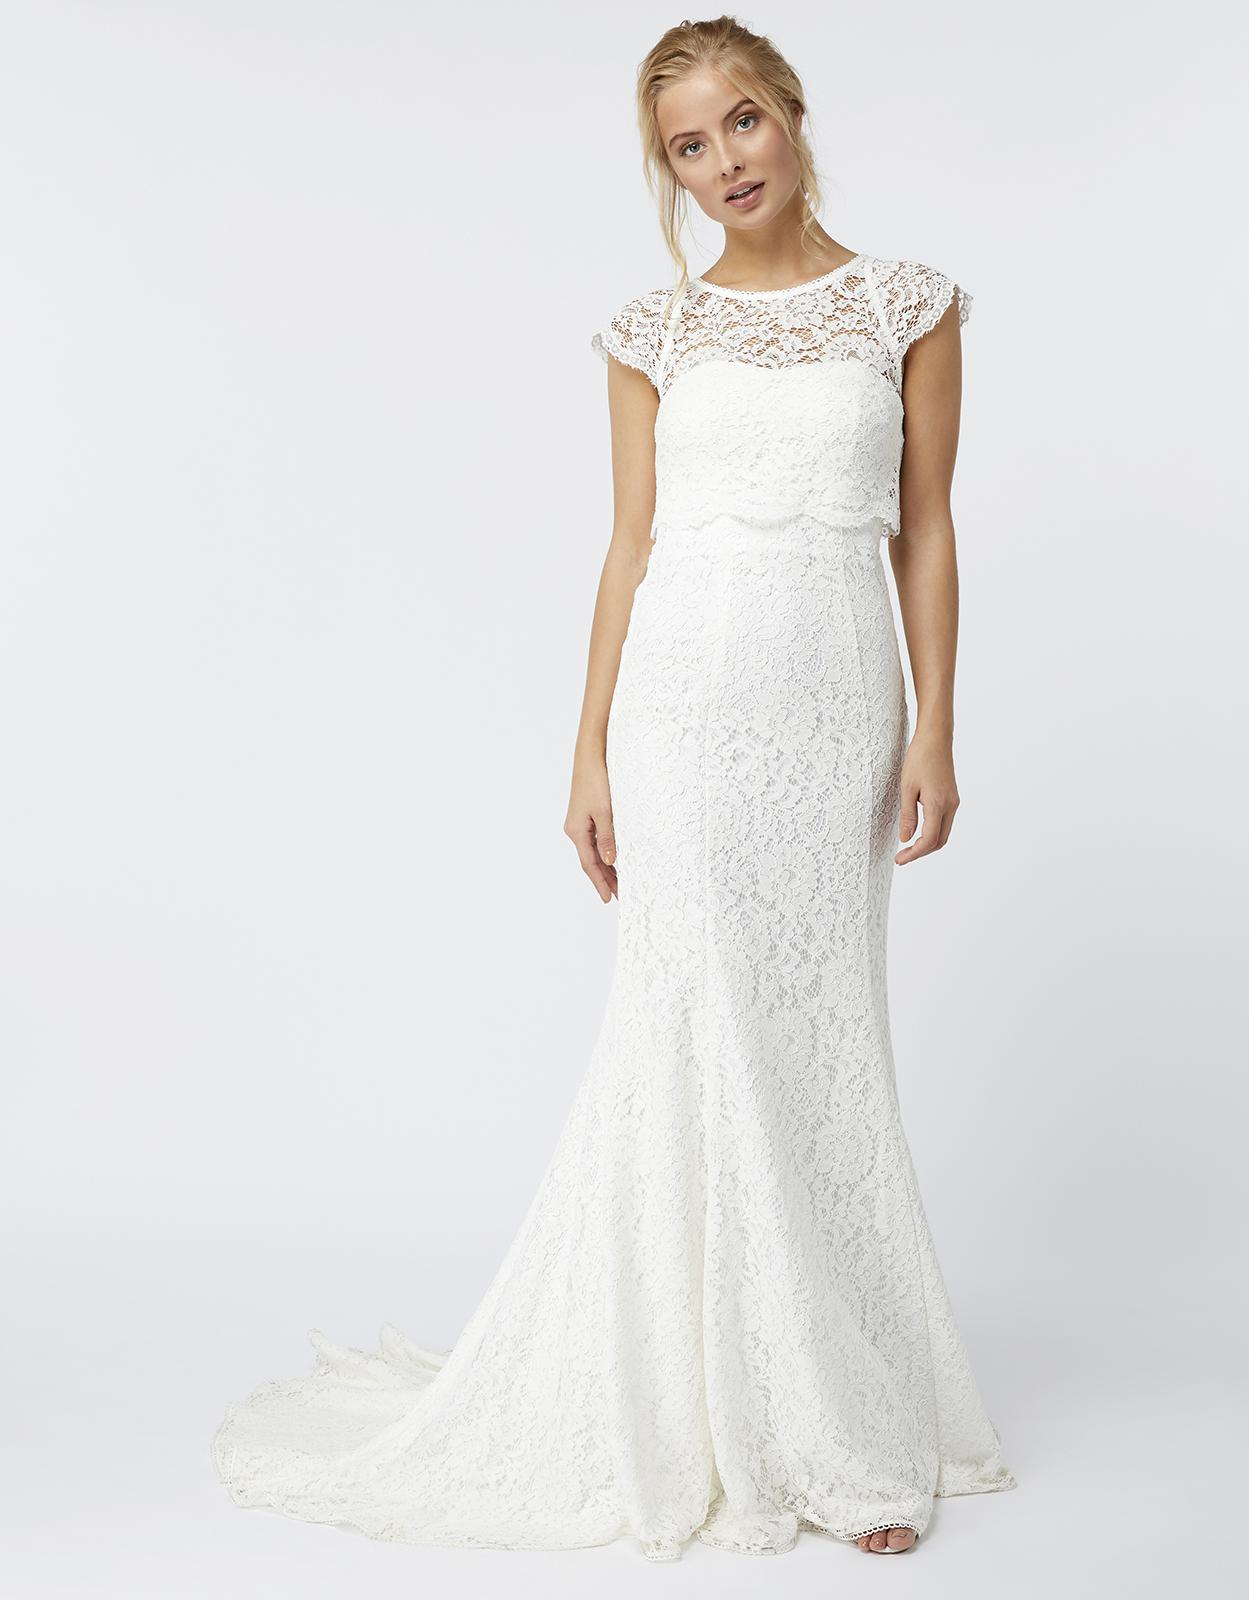 Monsoon Alondra Lace Bridal Dress in White - Lyst